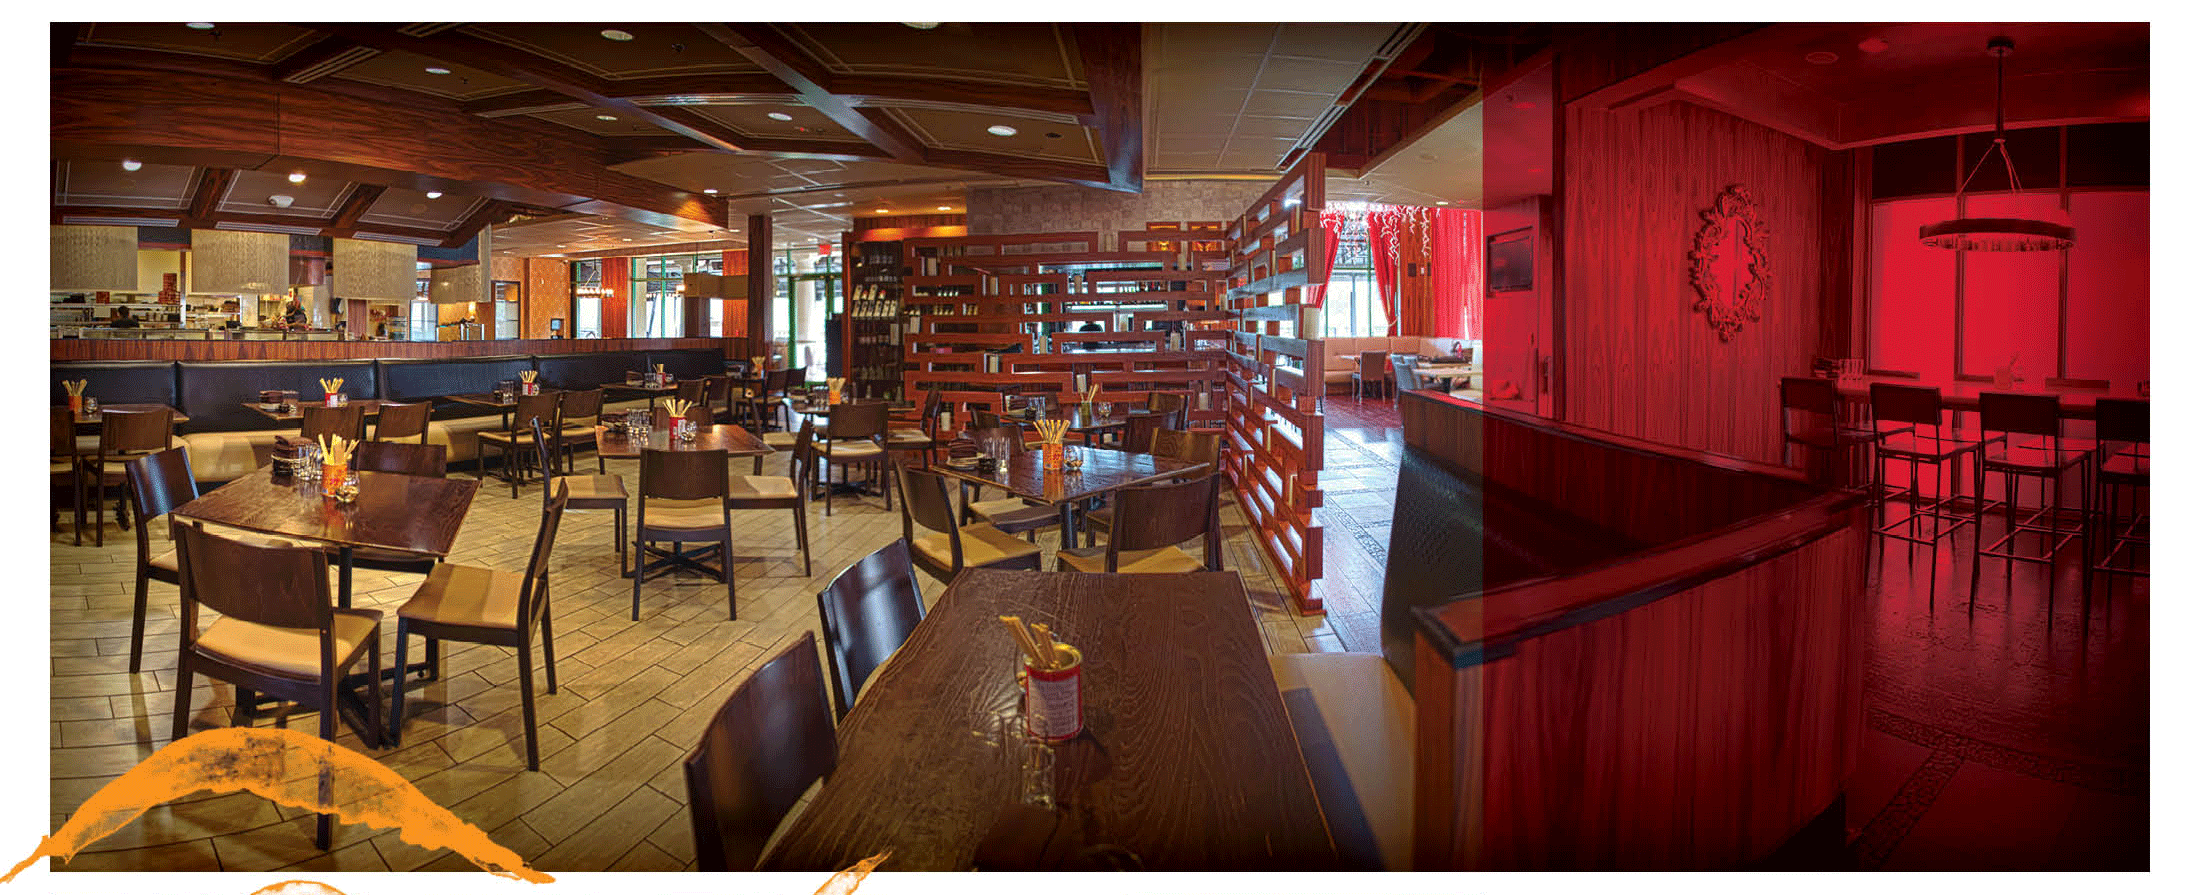 Main Dining Room | Dragonfly Robata Grill & Sushi | Sand Lake Road, Orlando